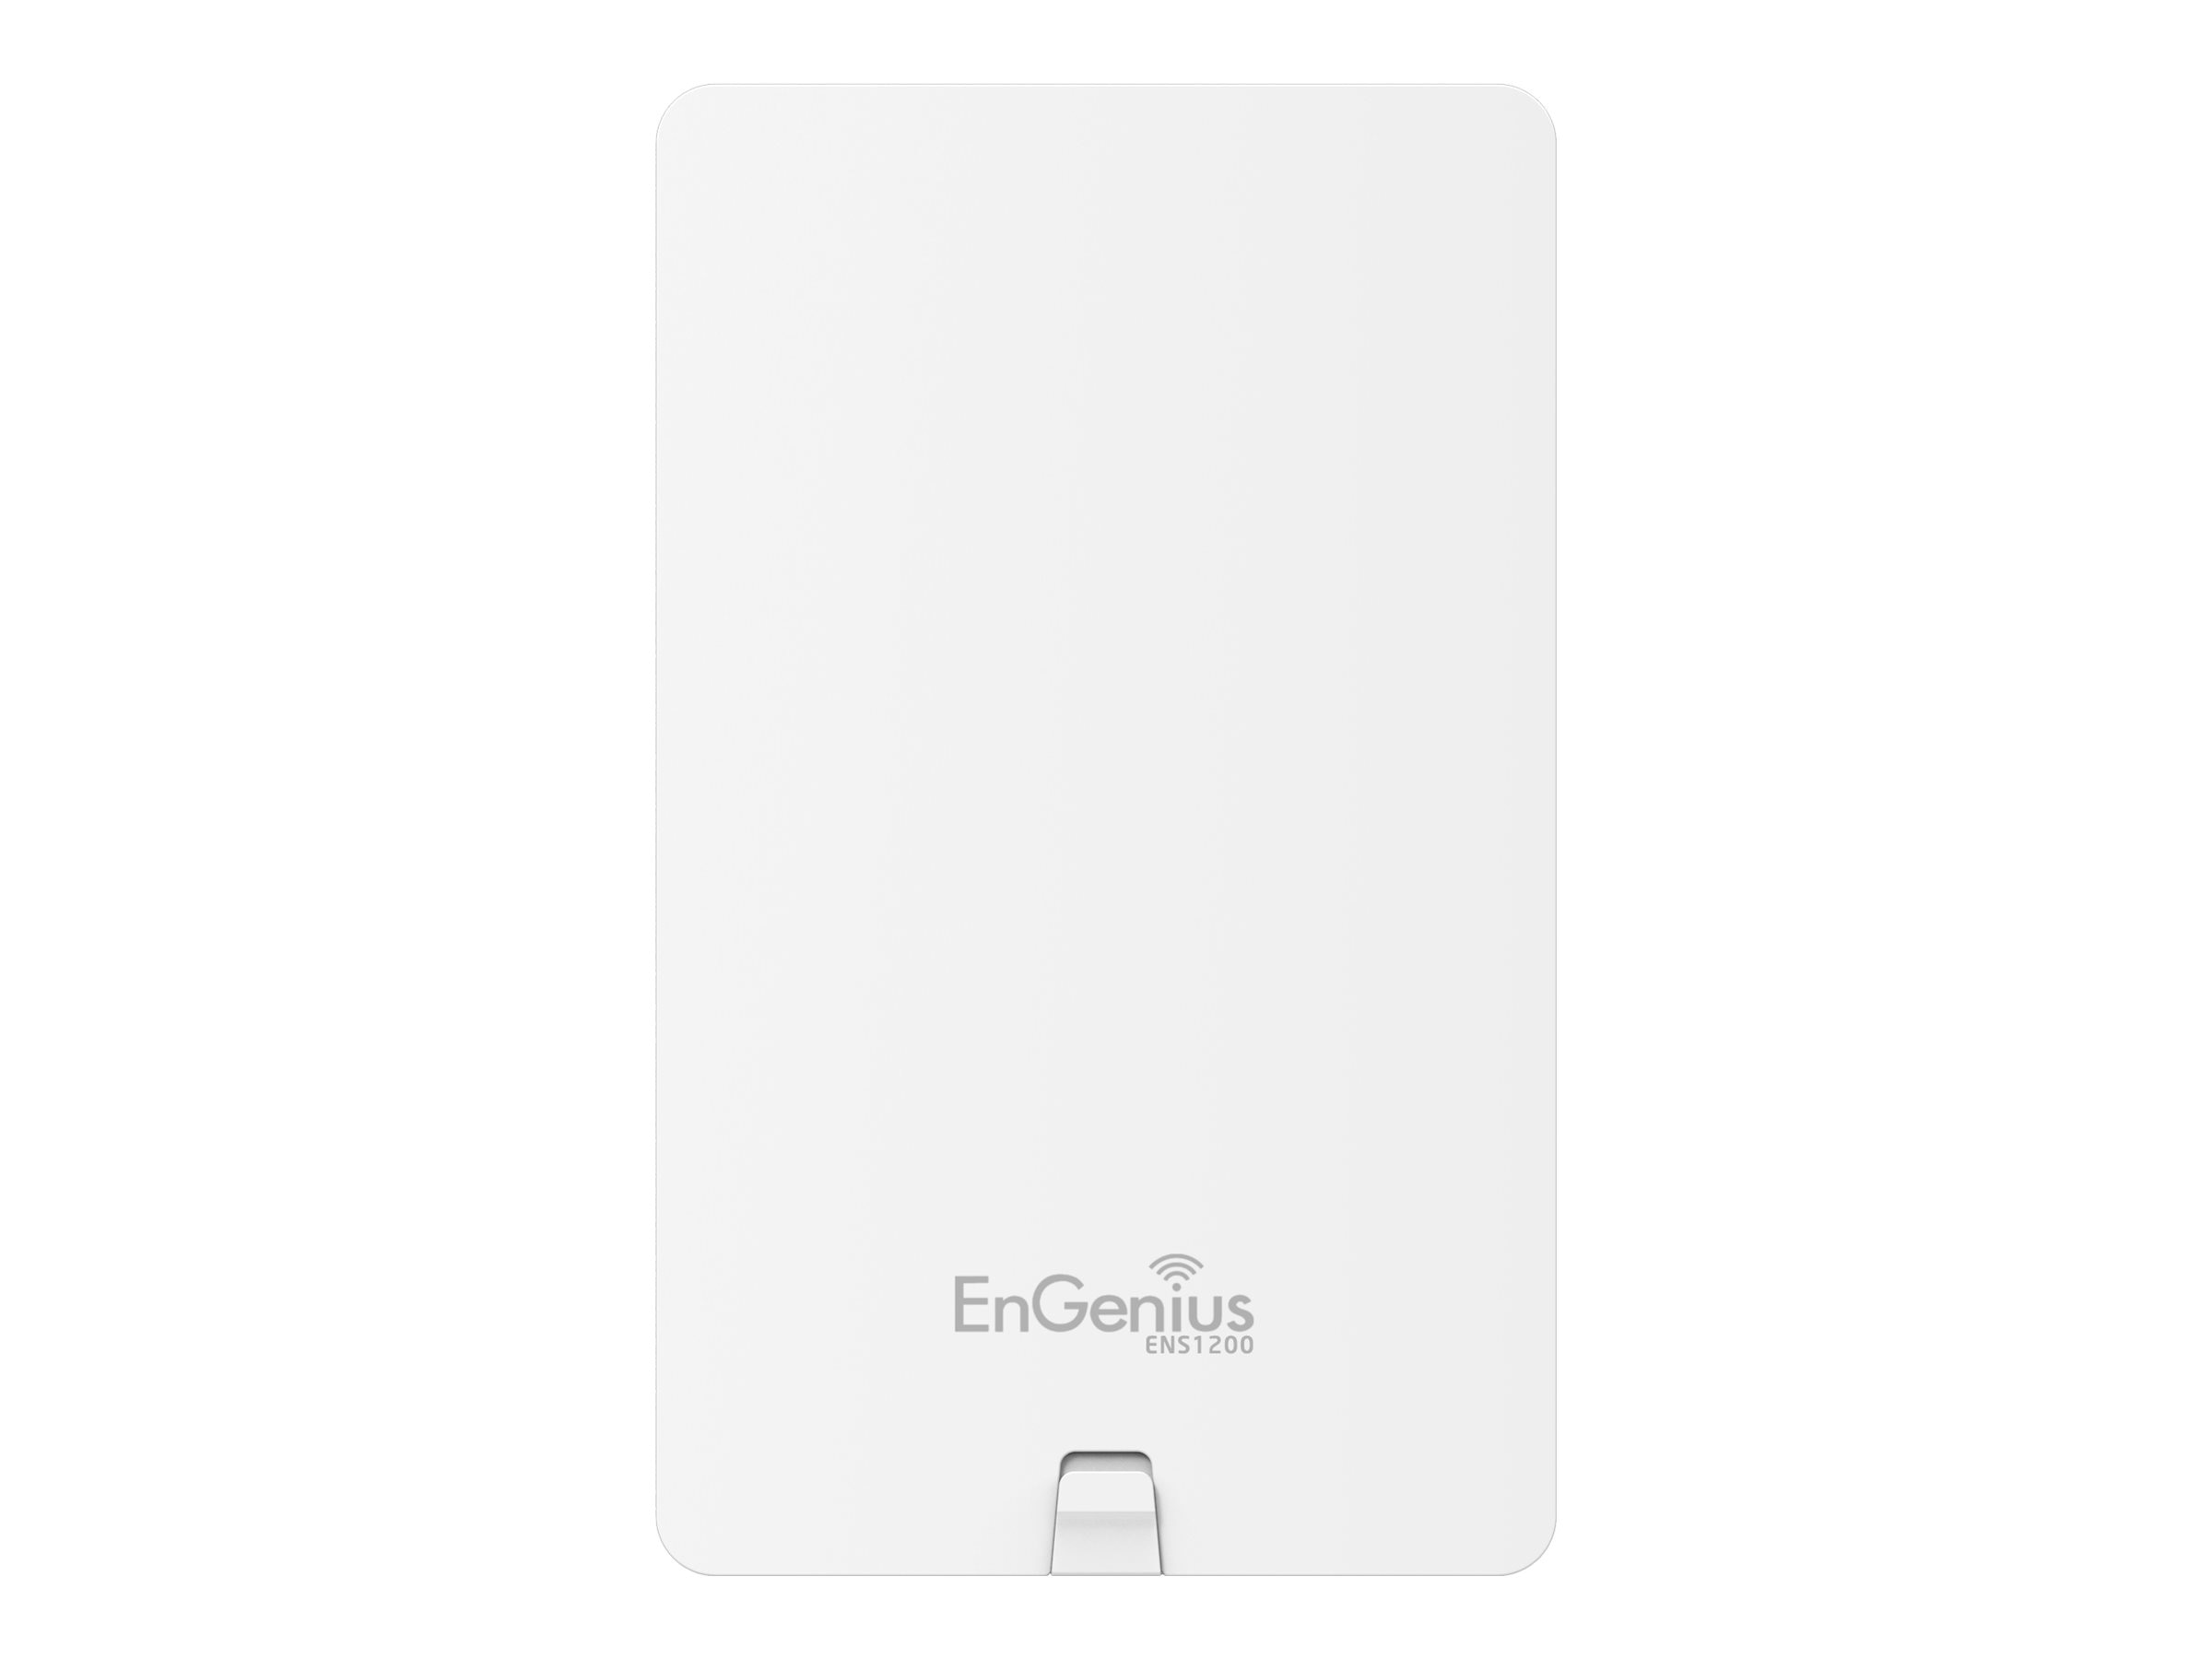 Engenius Technologies Dual Band Wireless AC1200 Outdoor Access Point, ENS1200, 18158682, Wireless Access Points & Bridges